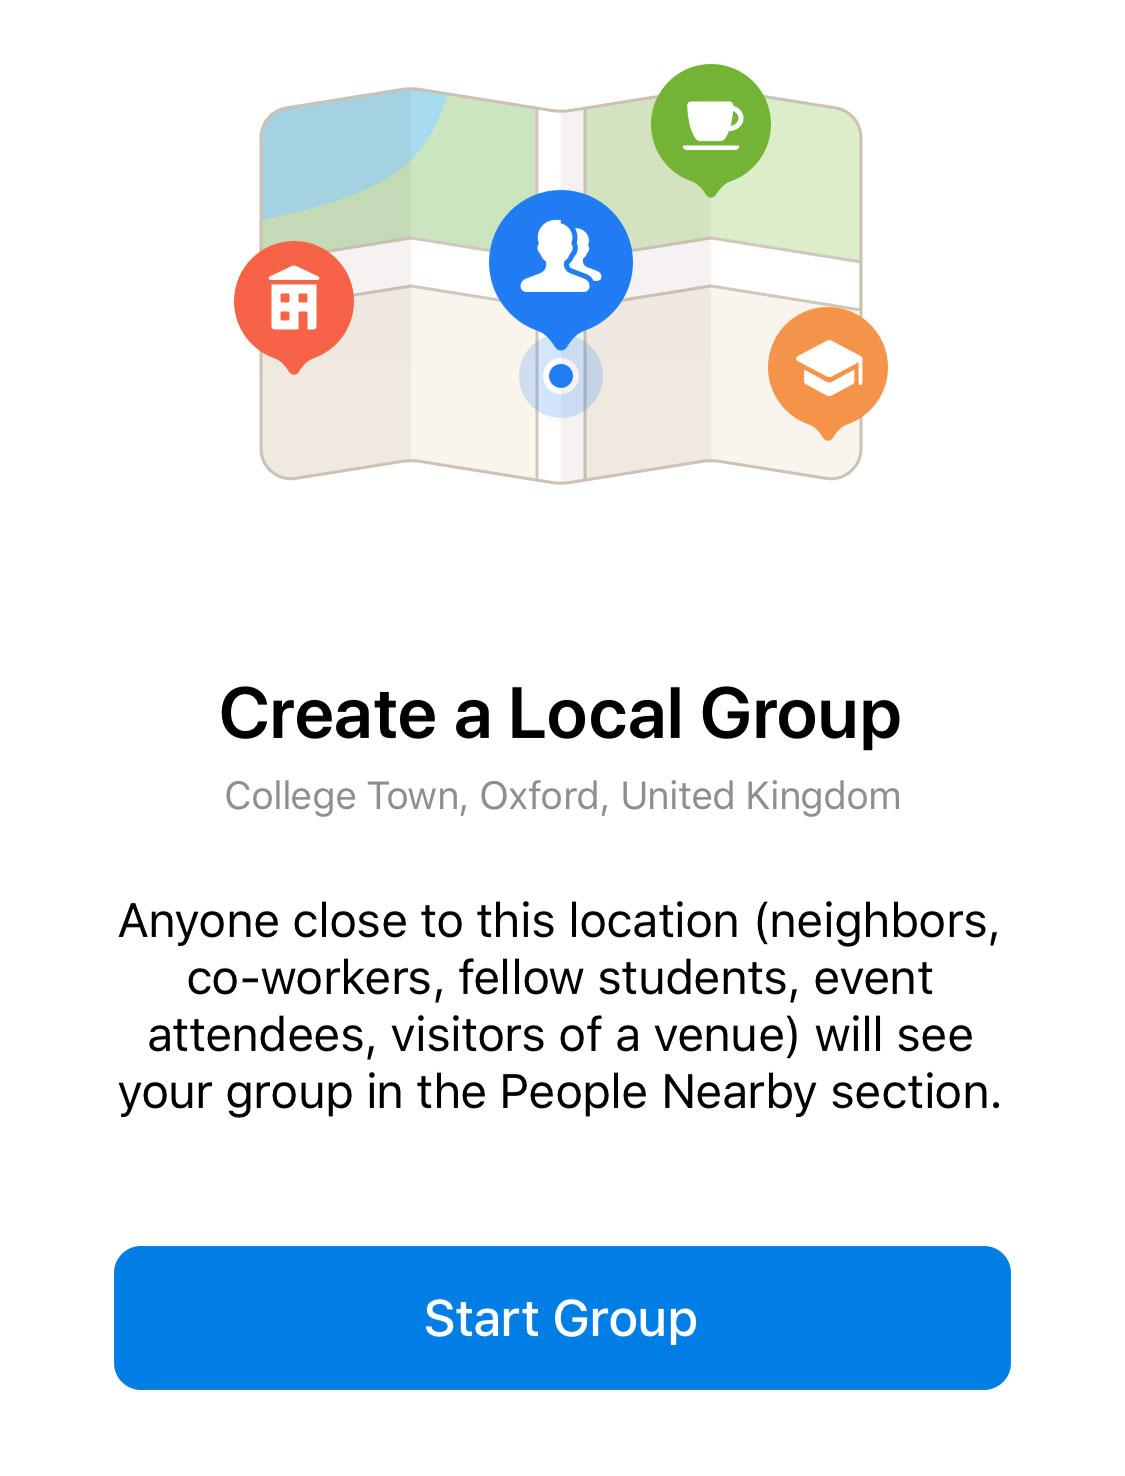 Location-Based Chats, Adding Contacts Without Phone Numbers and More